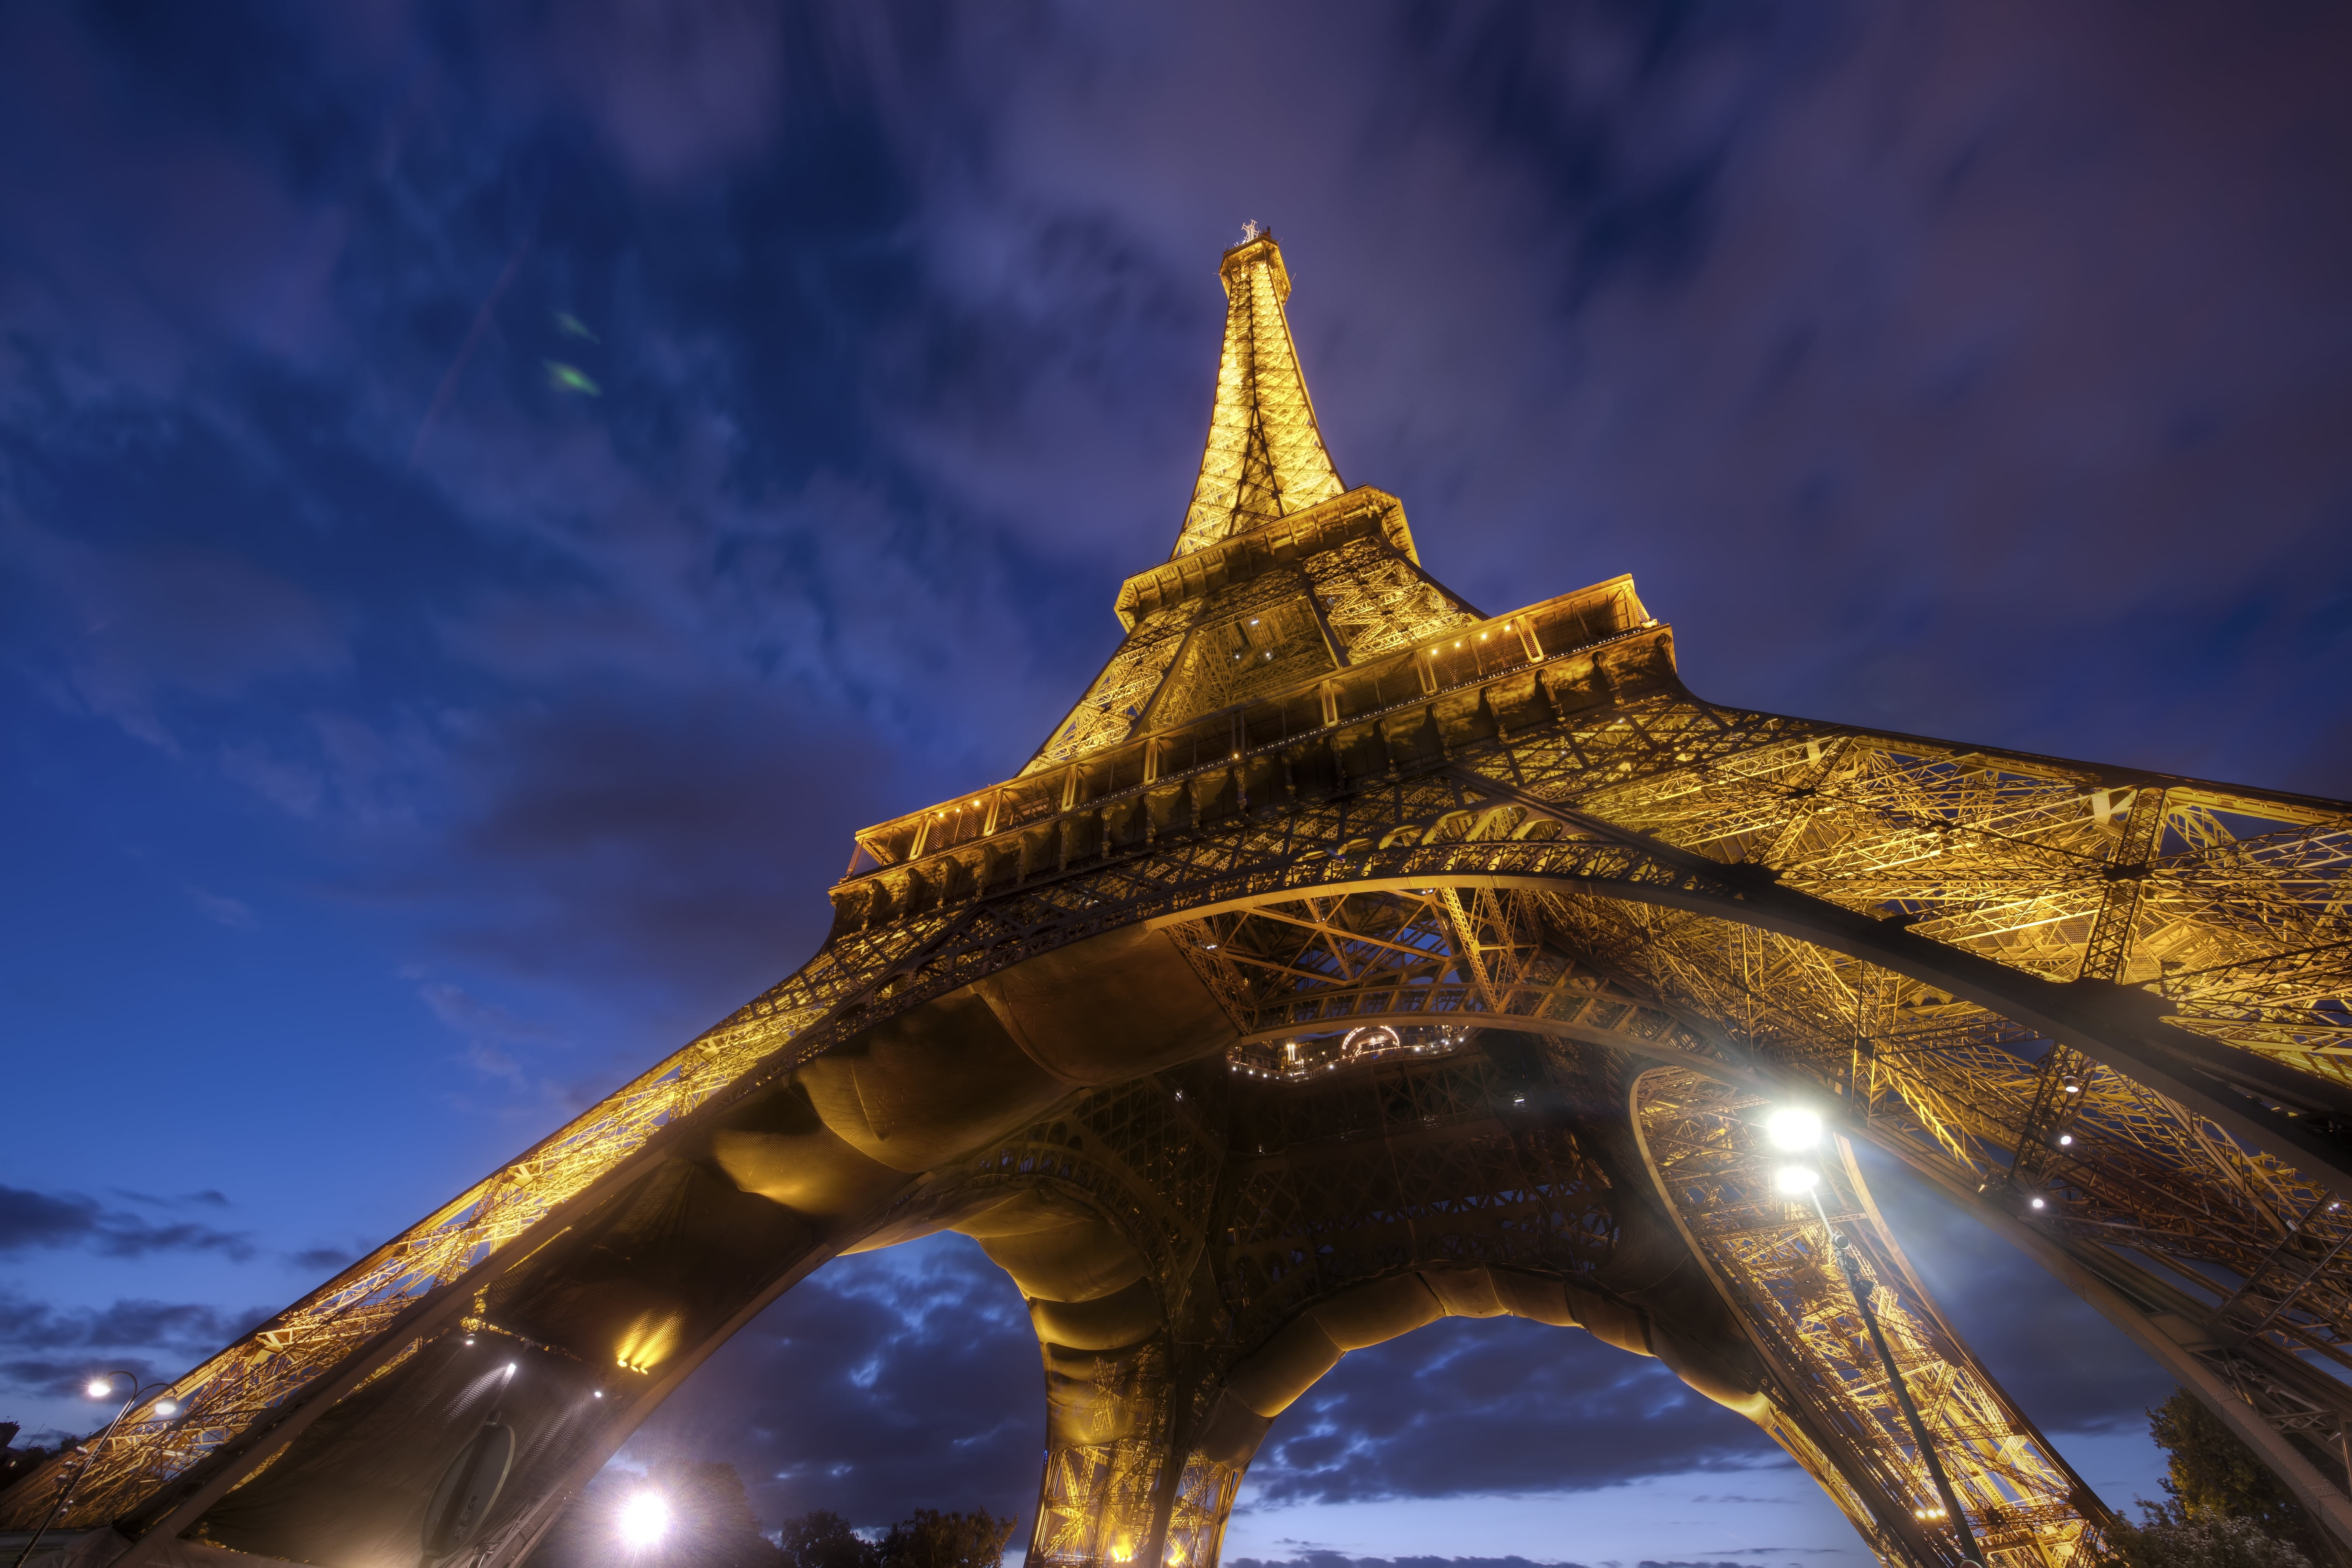 Worms eye view of Eiffel tower during nighttime HD wallpaper 6048x4032